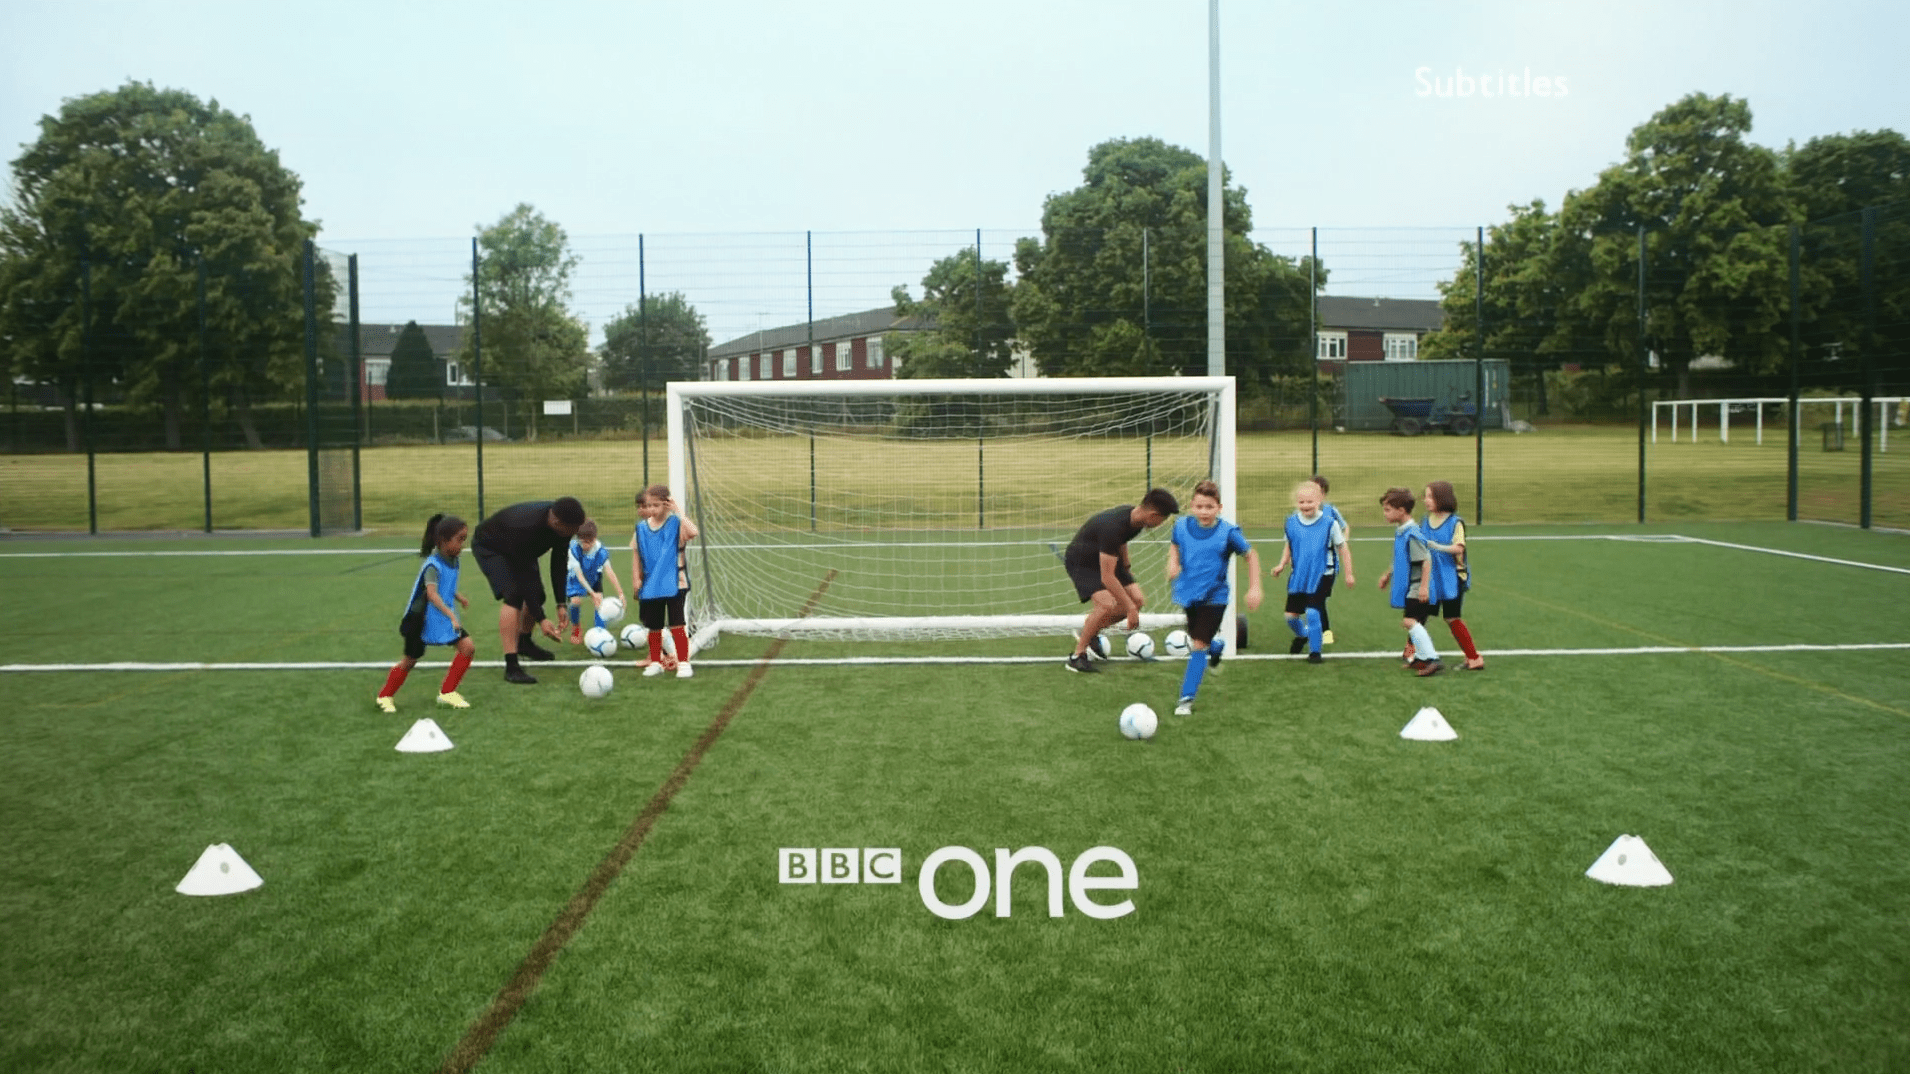 PICTURED: BBC One ident - Under-7 Footballers, Barnet - Version 1.